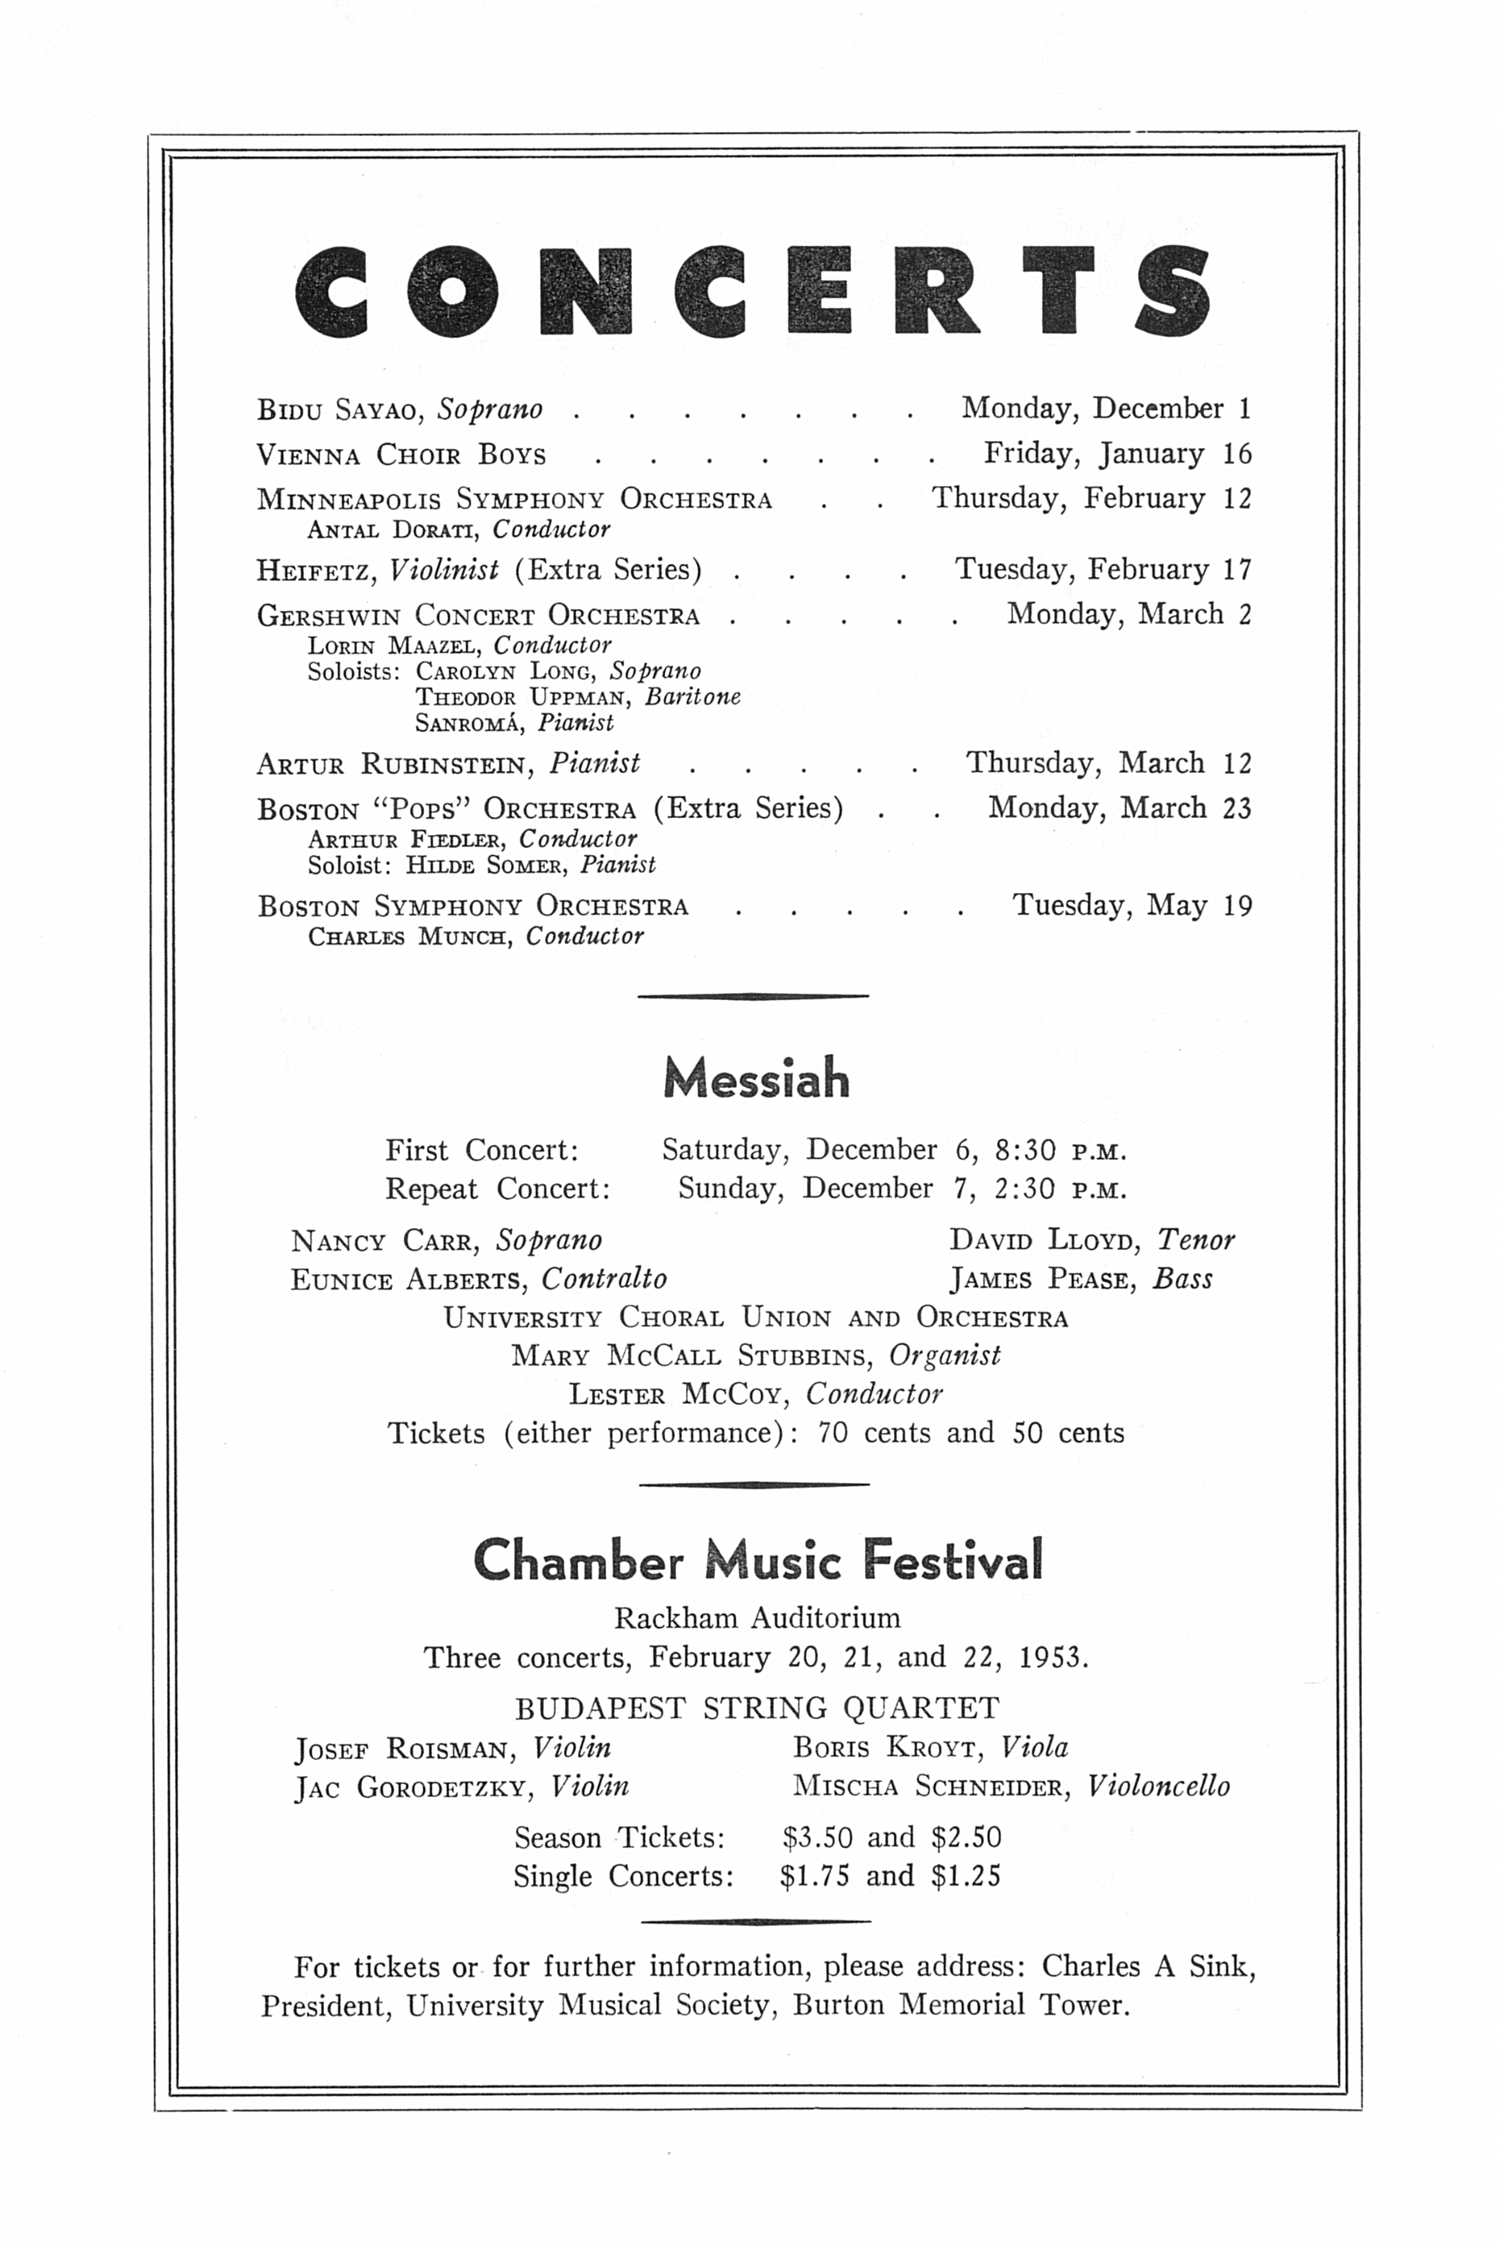 UMS Concert Program Tuesday Evening November 25 1952 Seventh – Concert Program